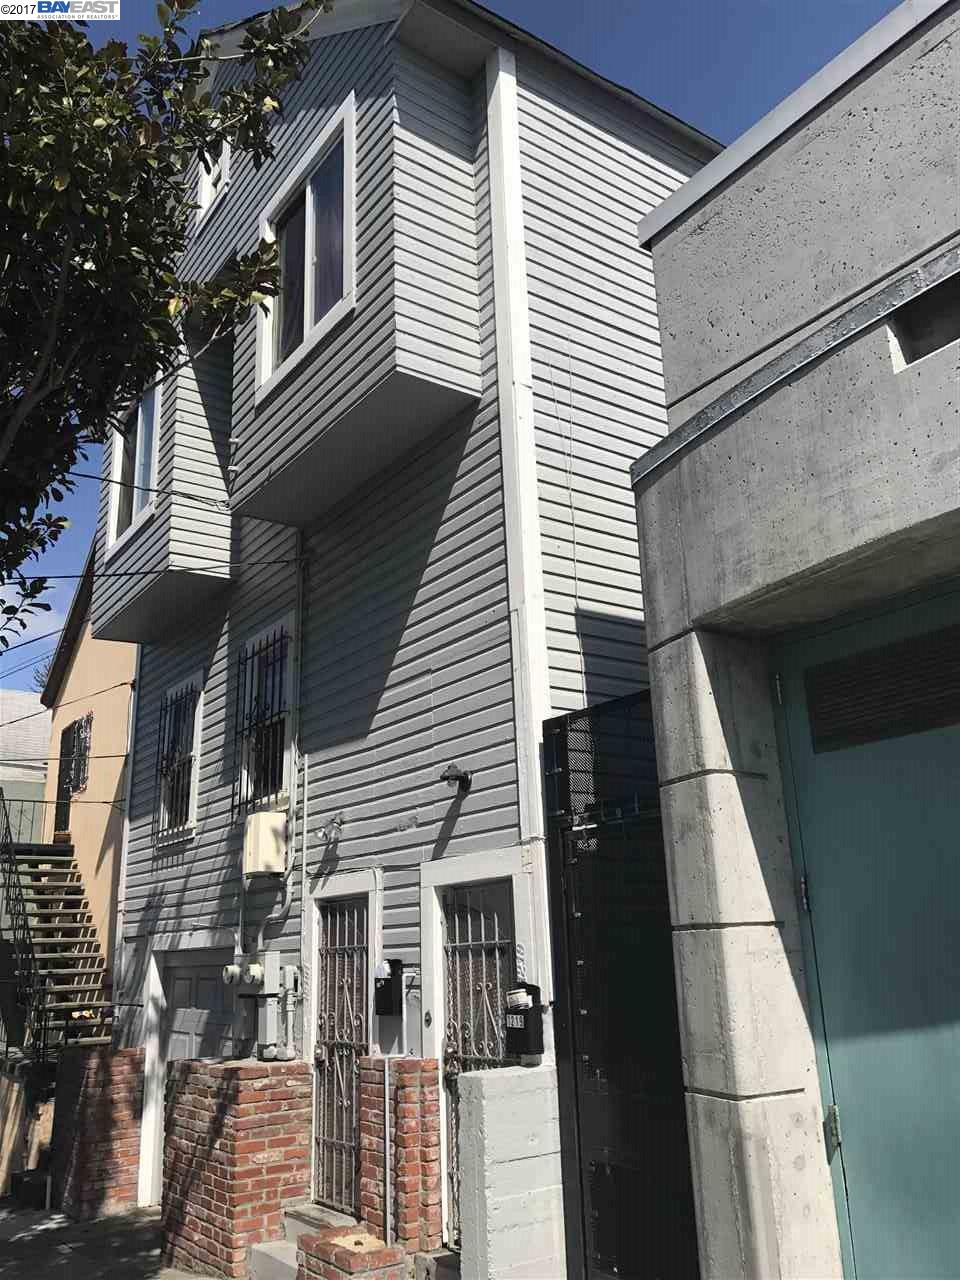 Additional photo for property listing at 1219 Lane Street 1219 Lane Street San Francisco, カリフォルニア 94124 アメリカ合衆国